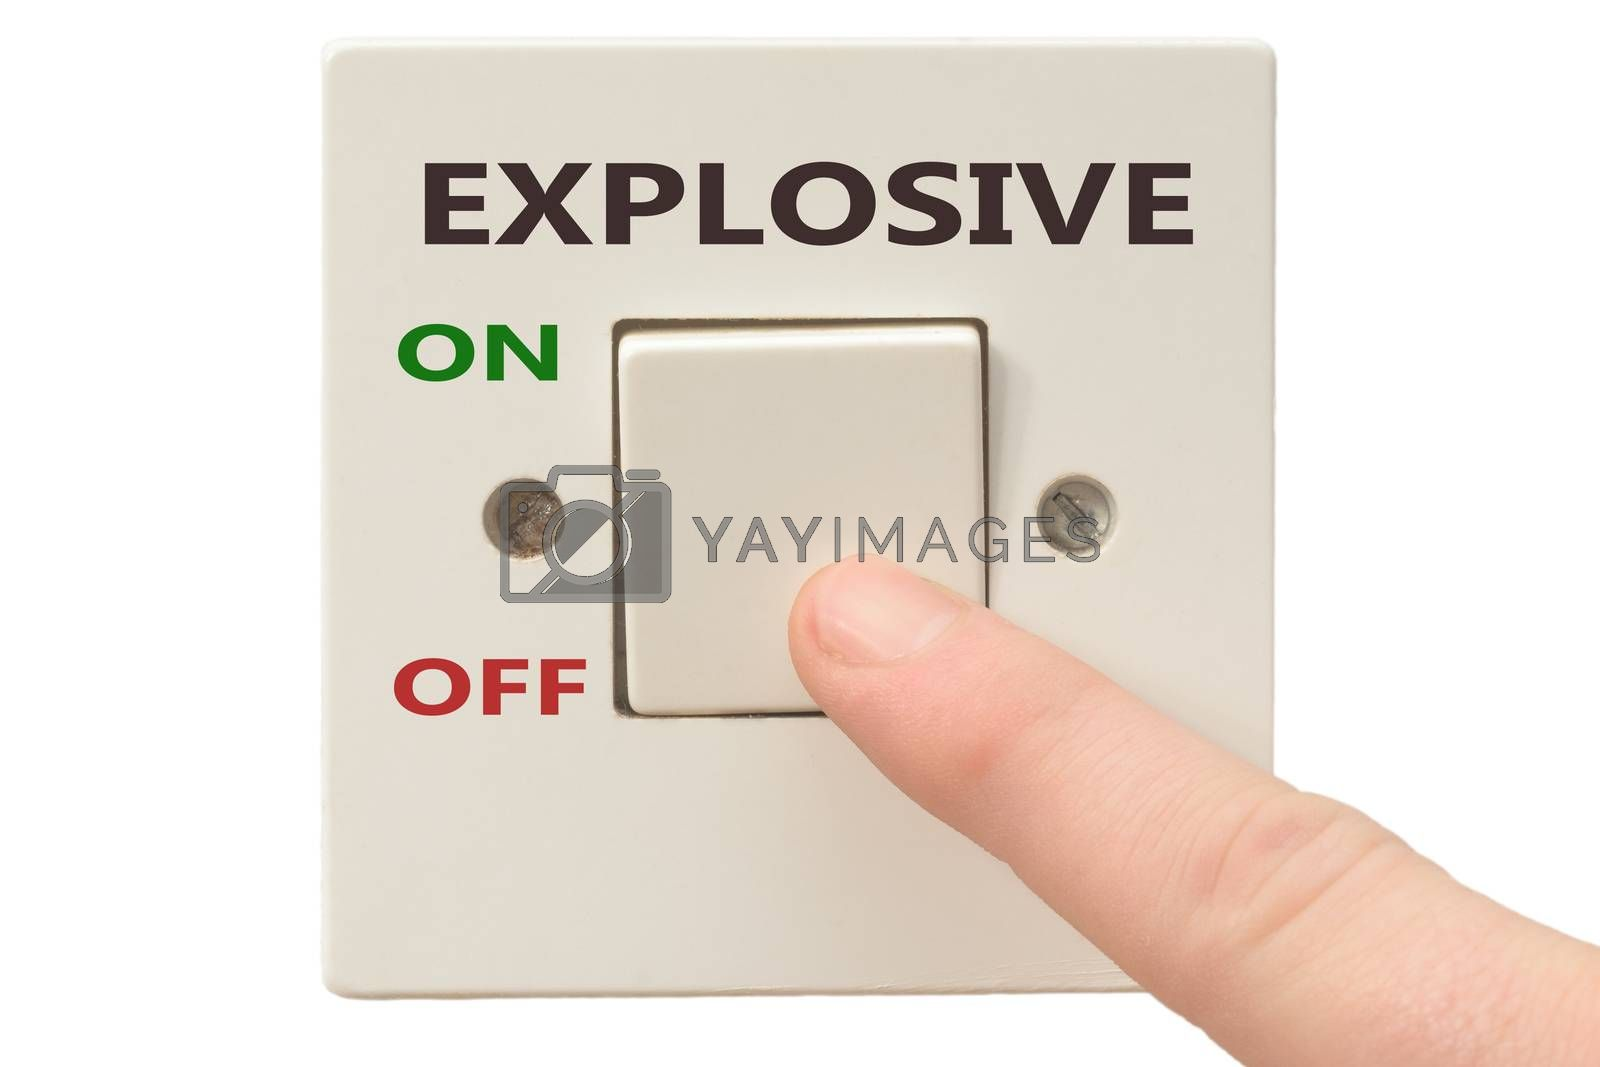 Turning off Explosive with finger on electrical switch